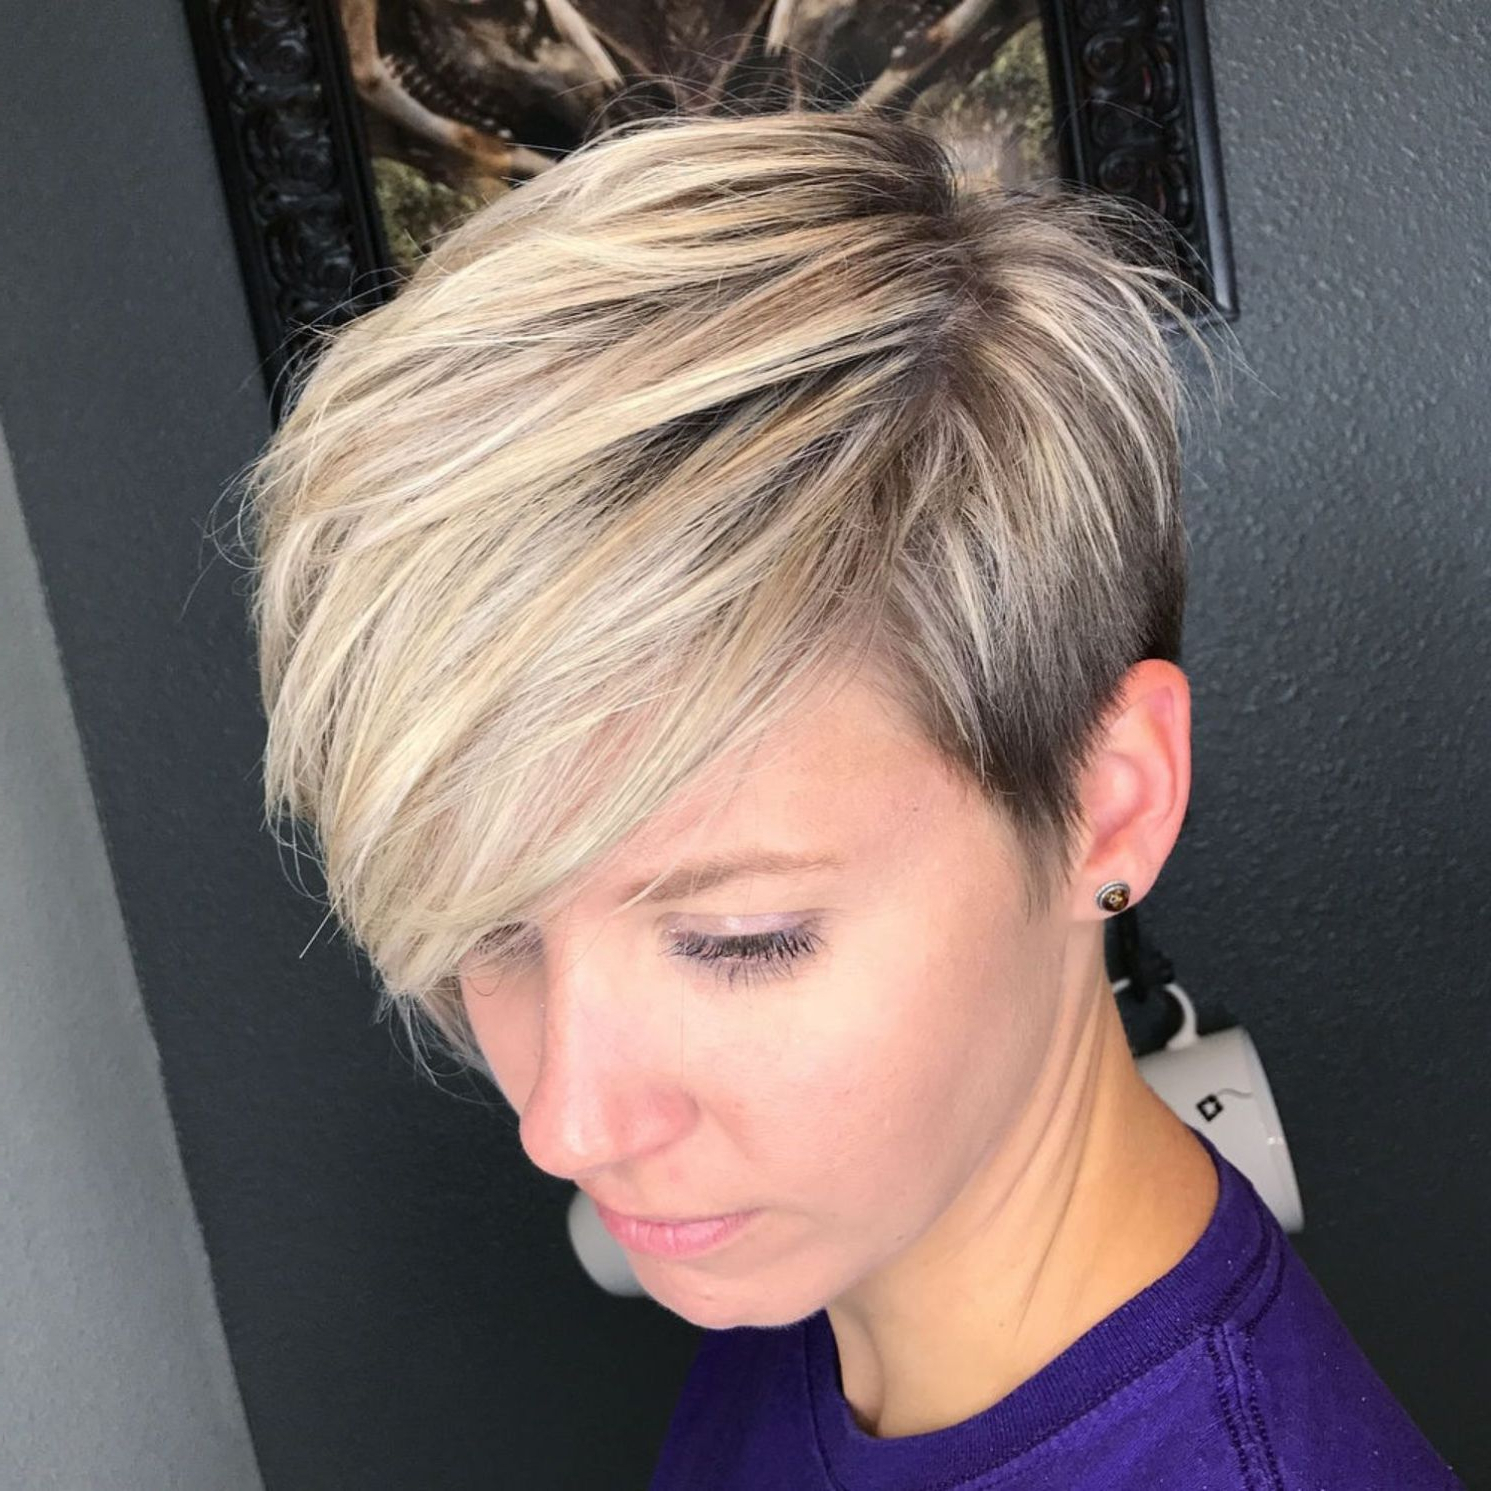 70 Short Shaggy, Spiky, Edgy Pixie Cuts And Hairstyles In 2018 For Bronde Balayage Pixie Haircuts With V Cut Nape (View 10 of 20)